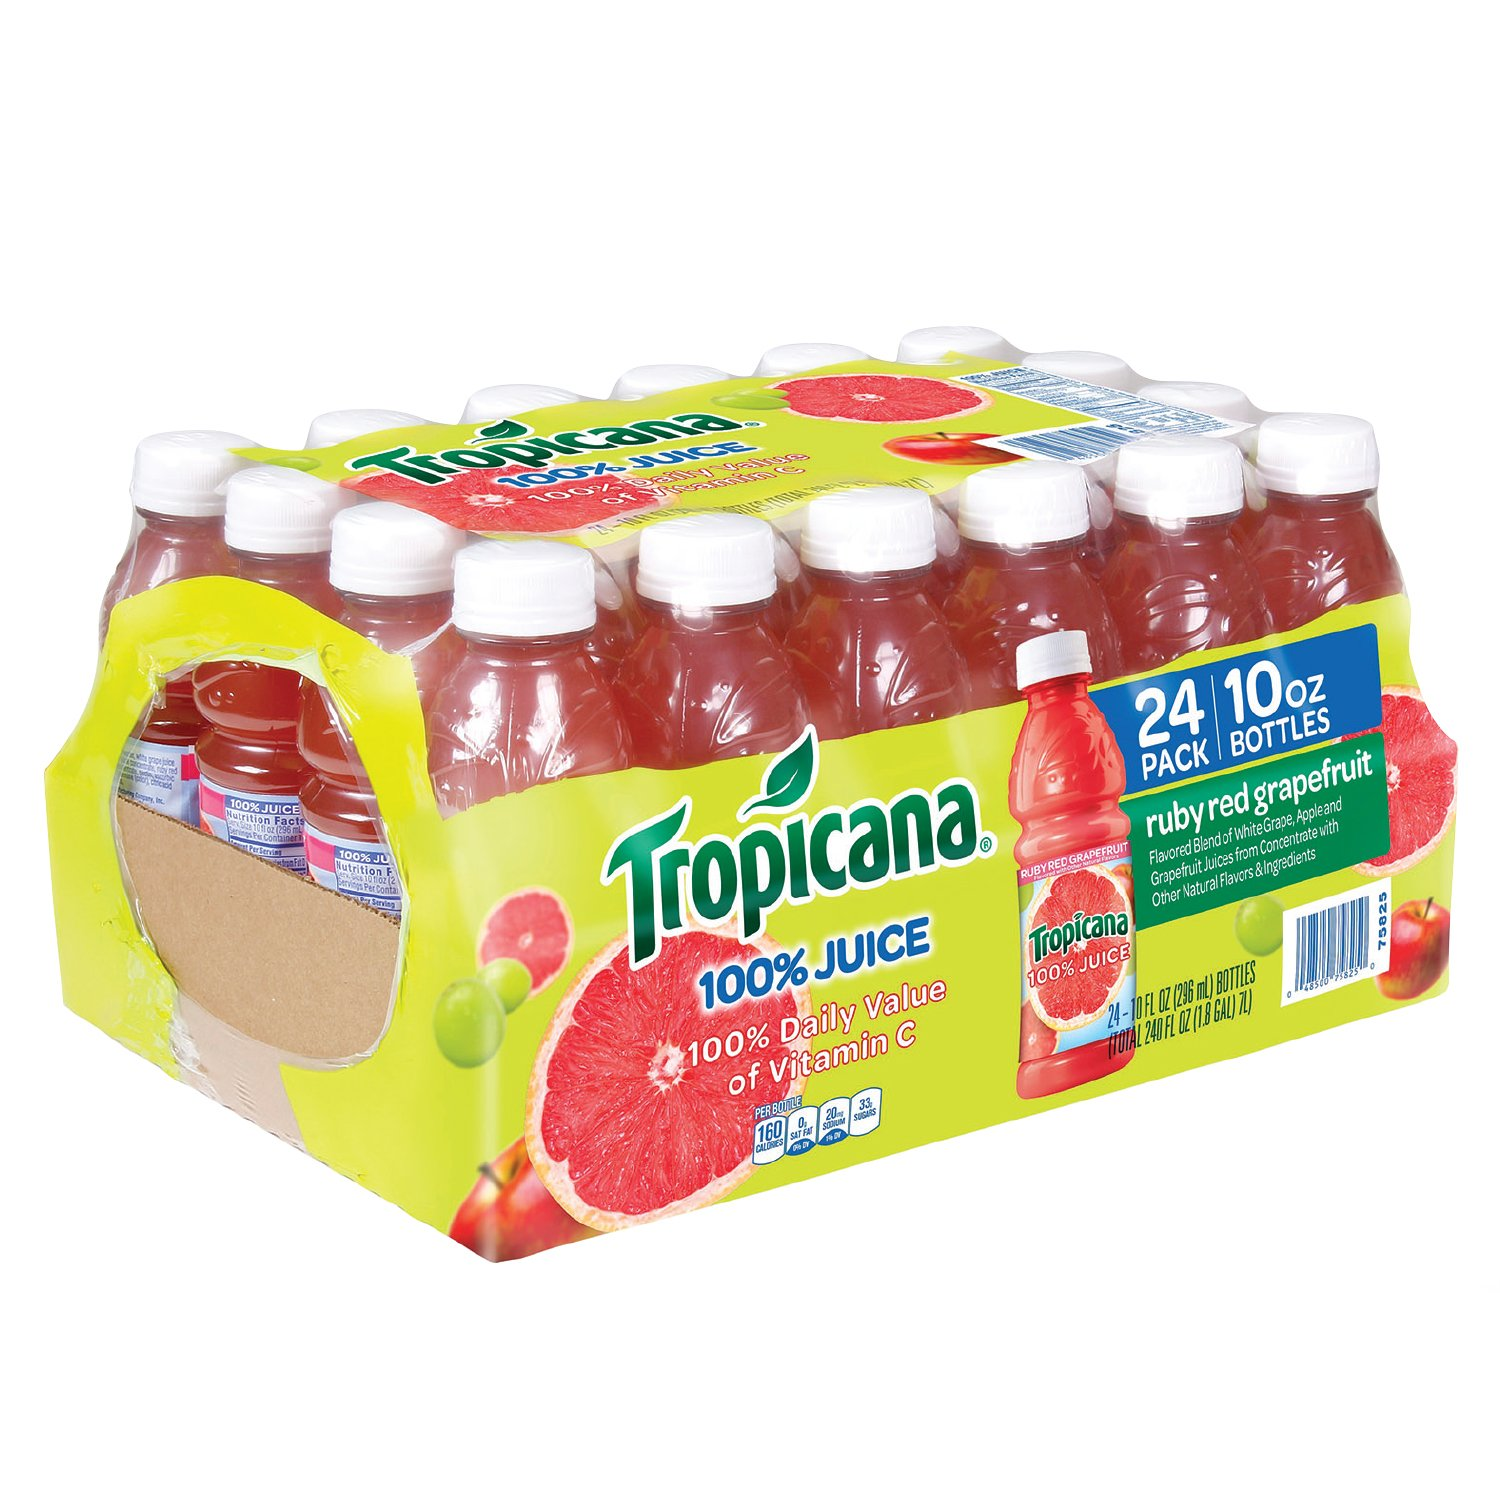 Tropicana Ruby Red Grapefruit.